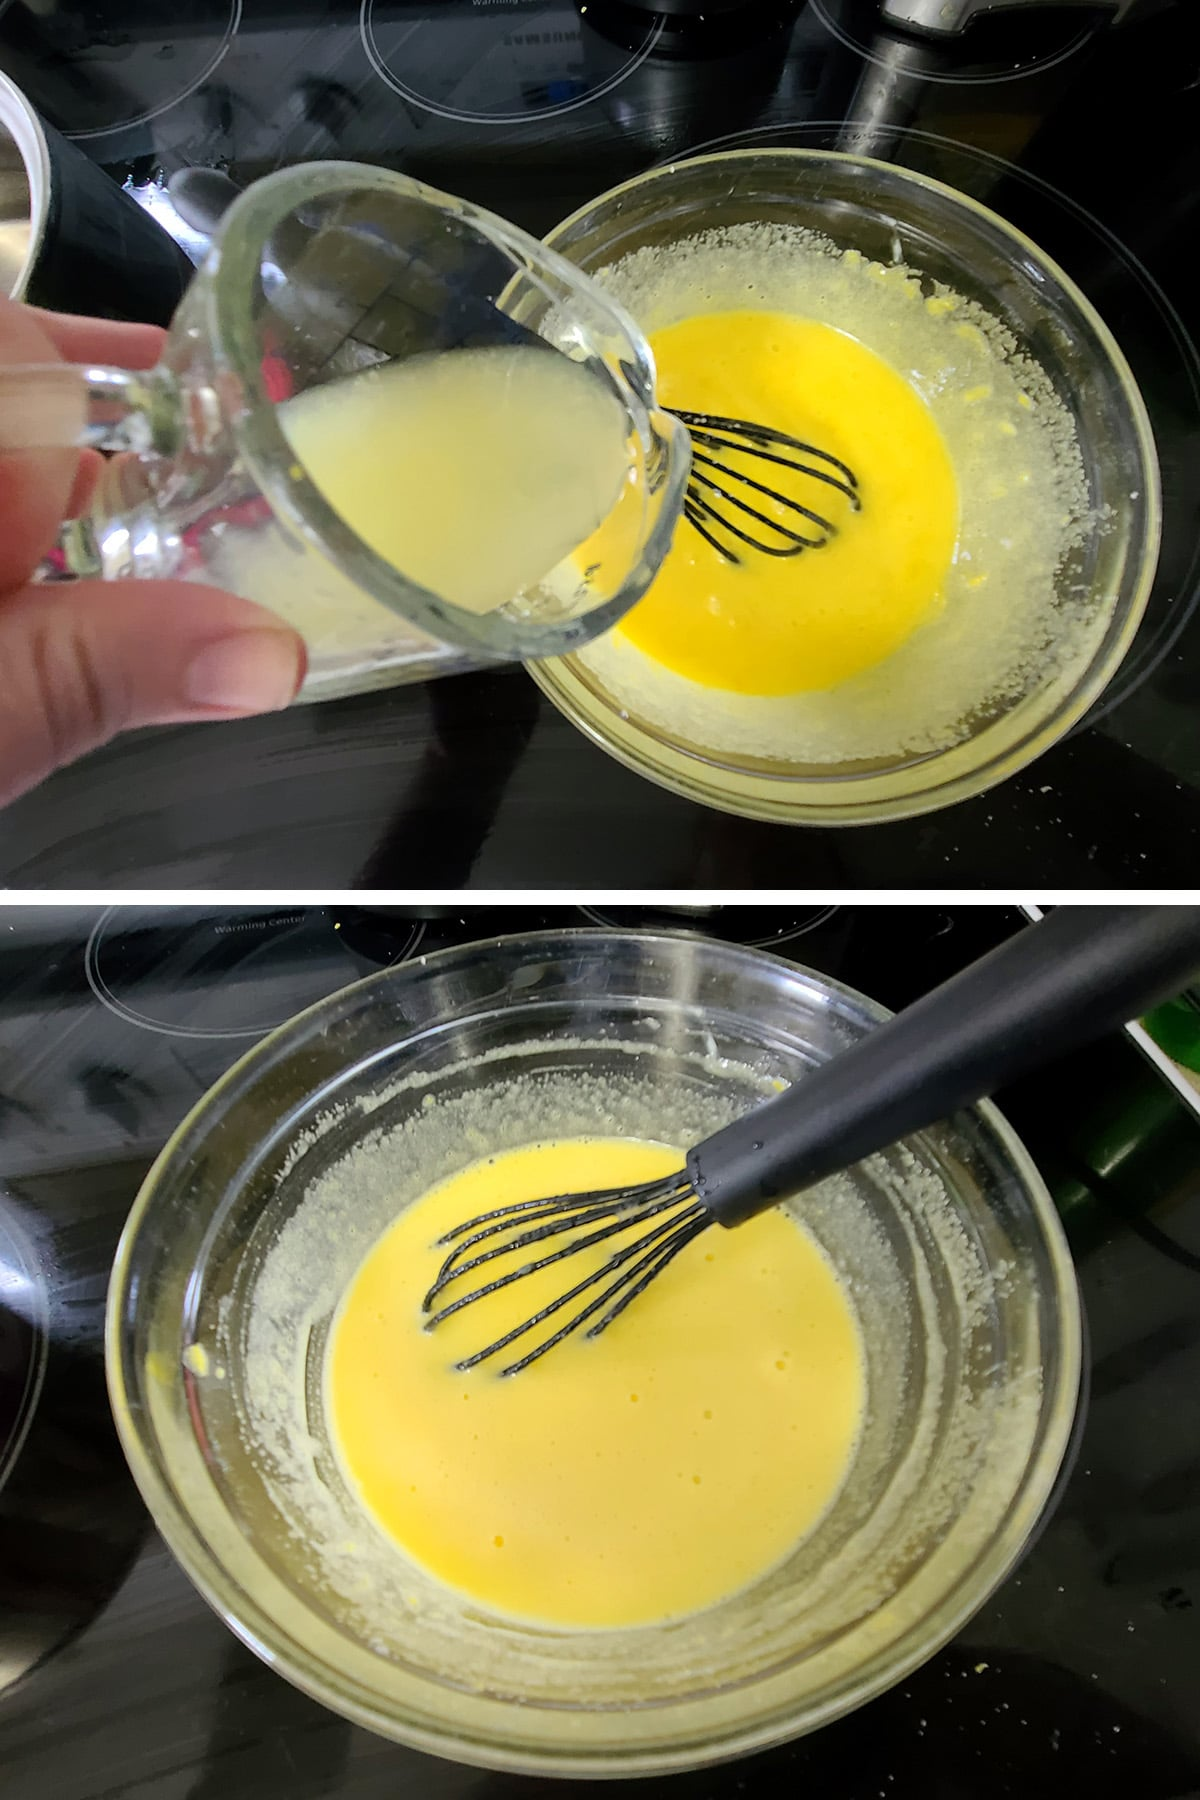 Lemon juice being added to the egg and sugar mixture and whisked in.